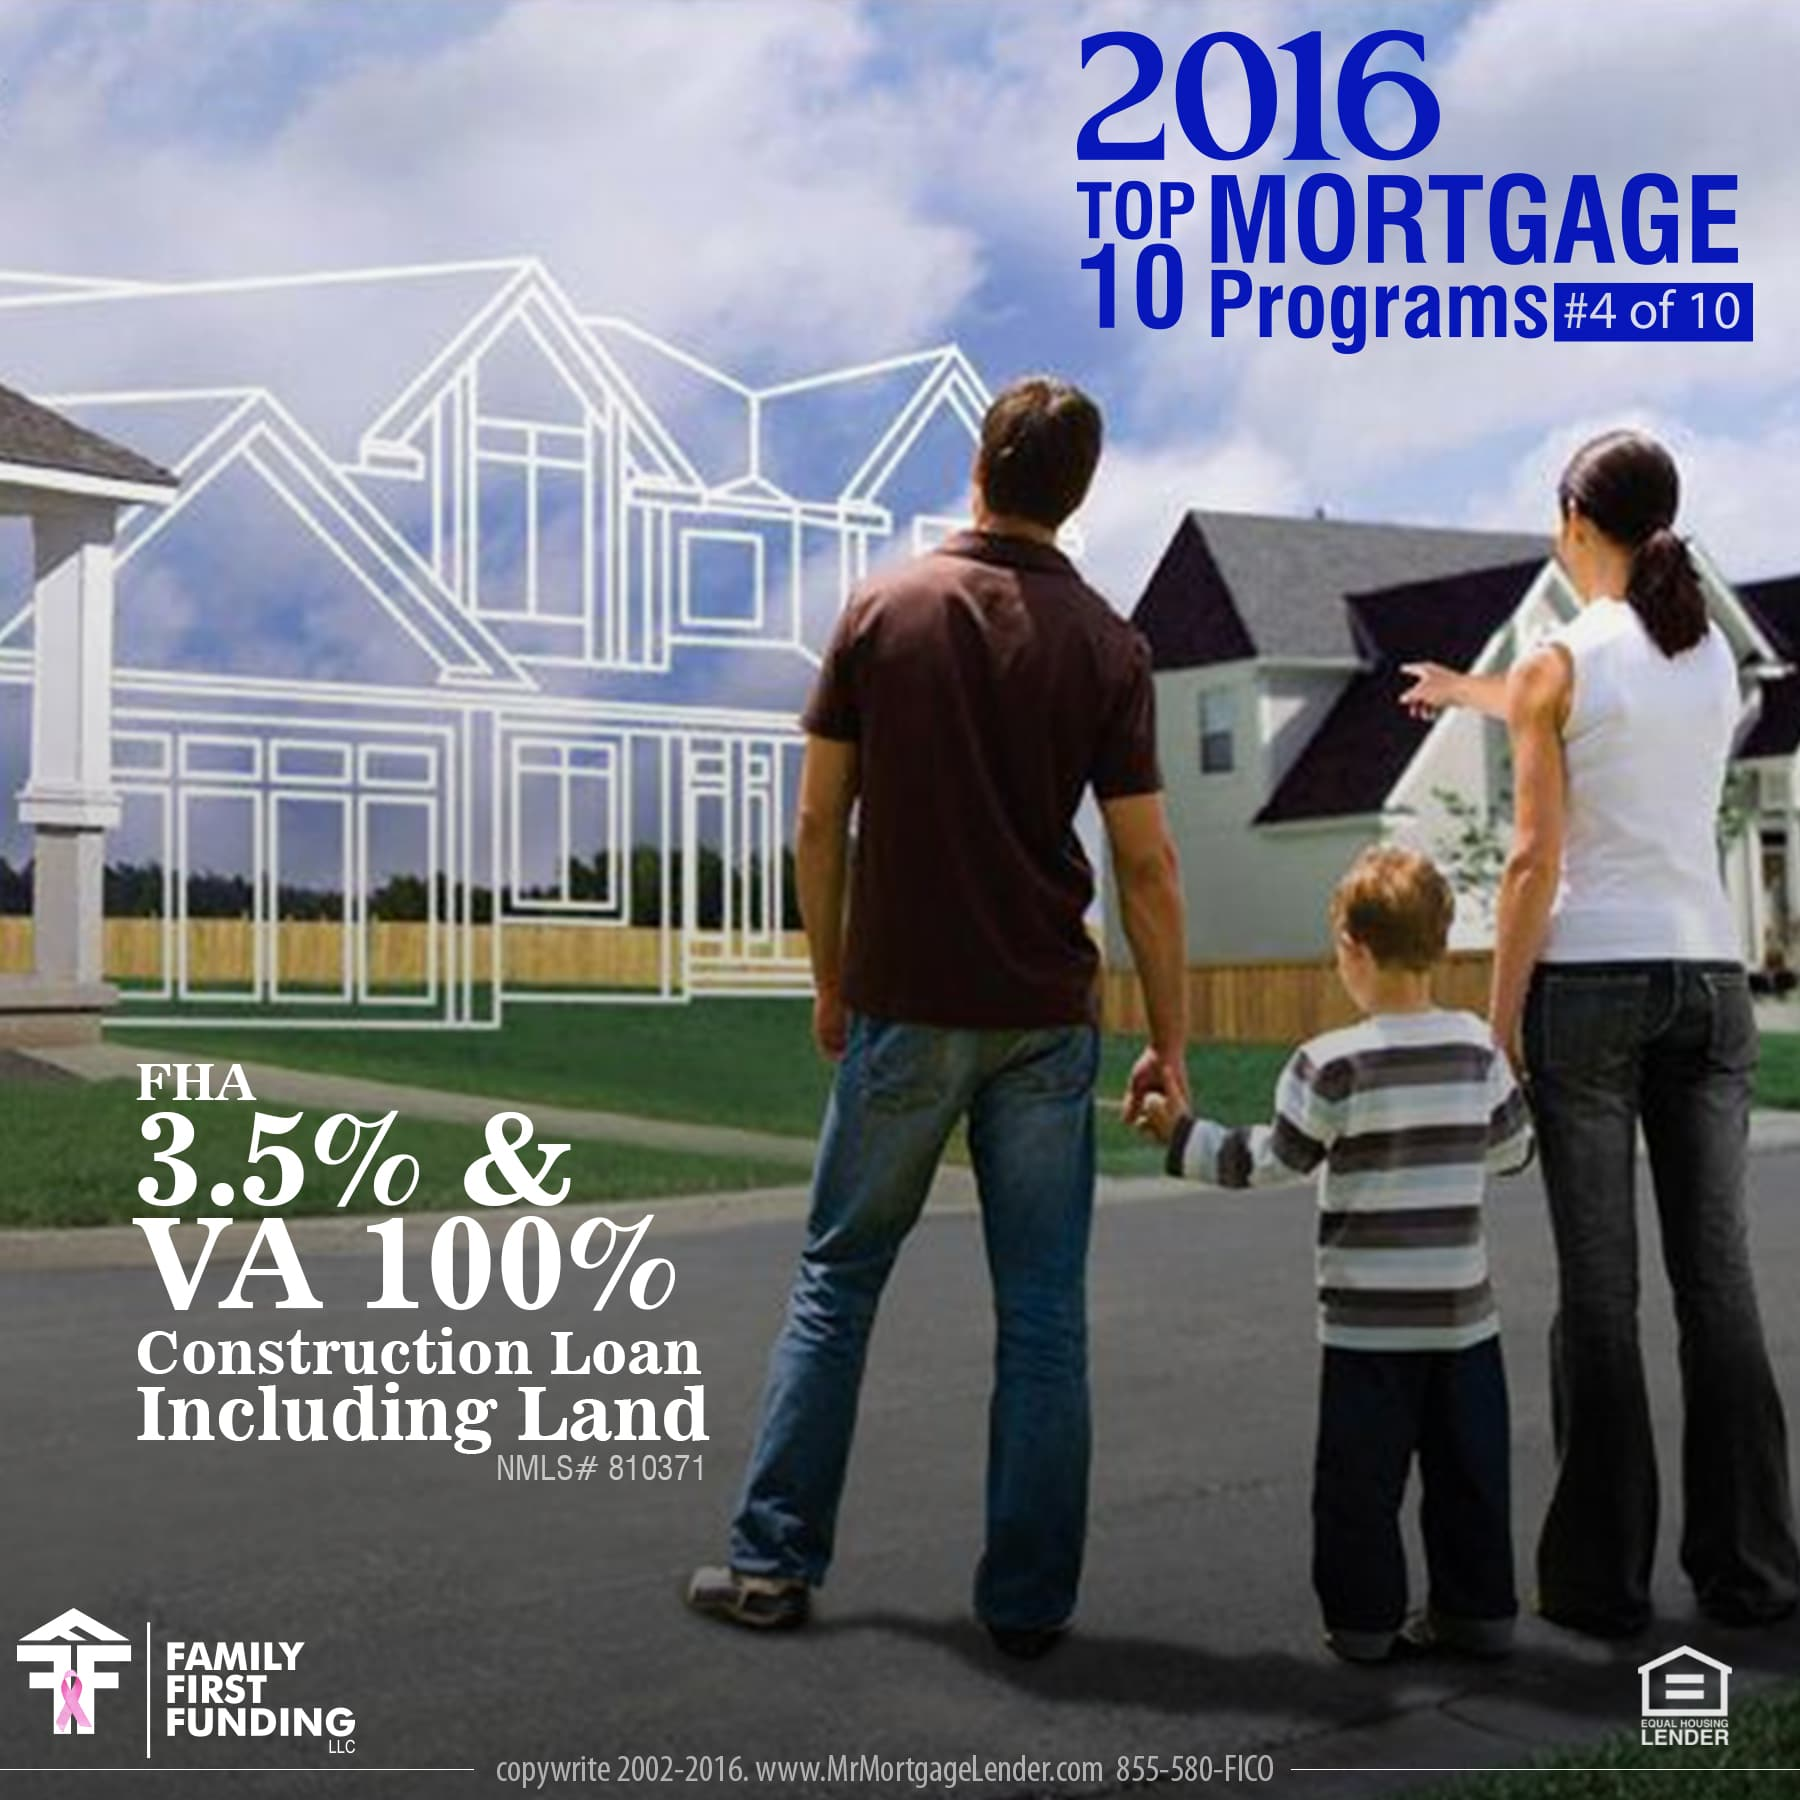 4. FHA 3.5 and VA 100 Construction Loan Including Land